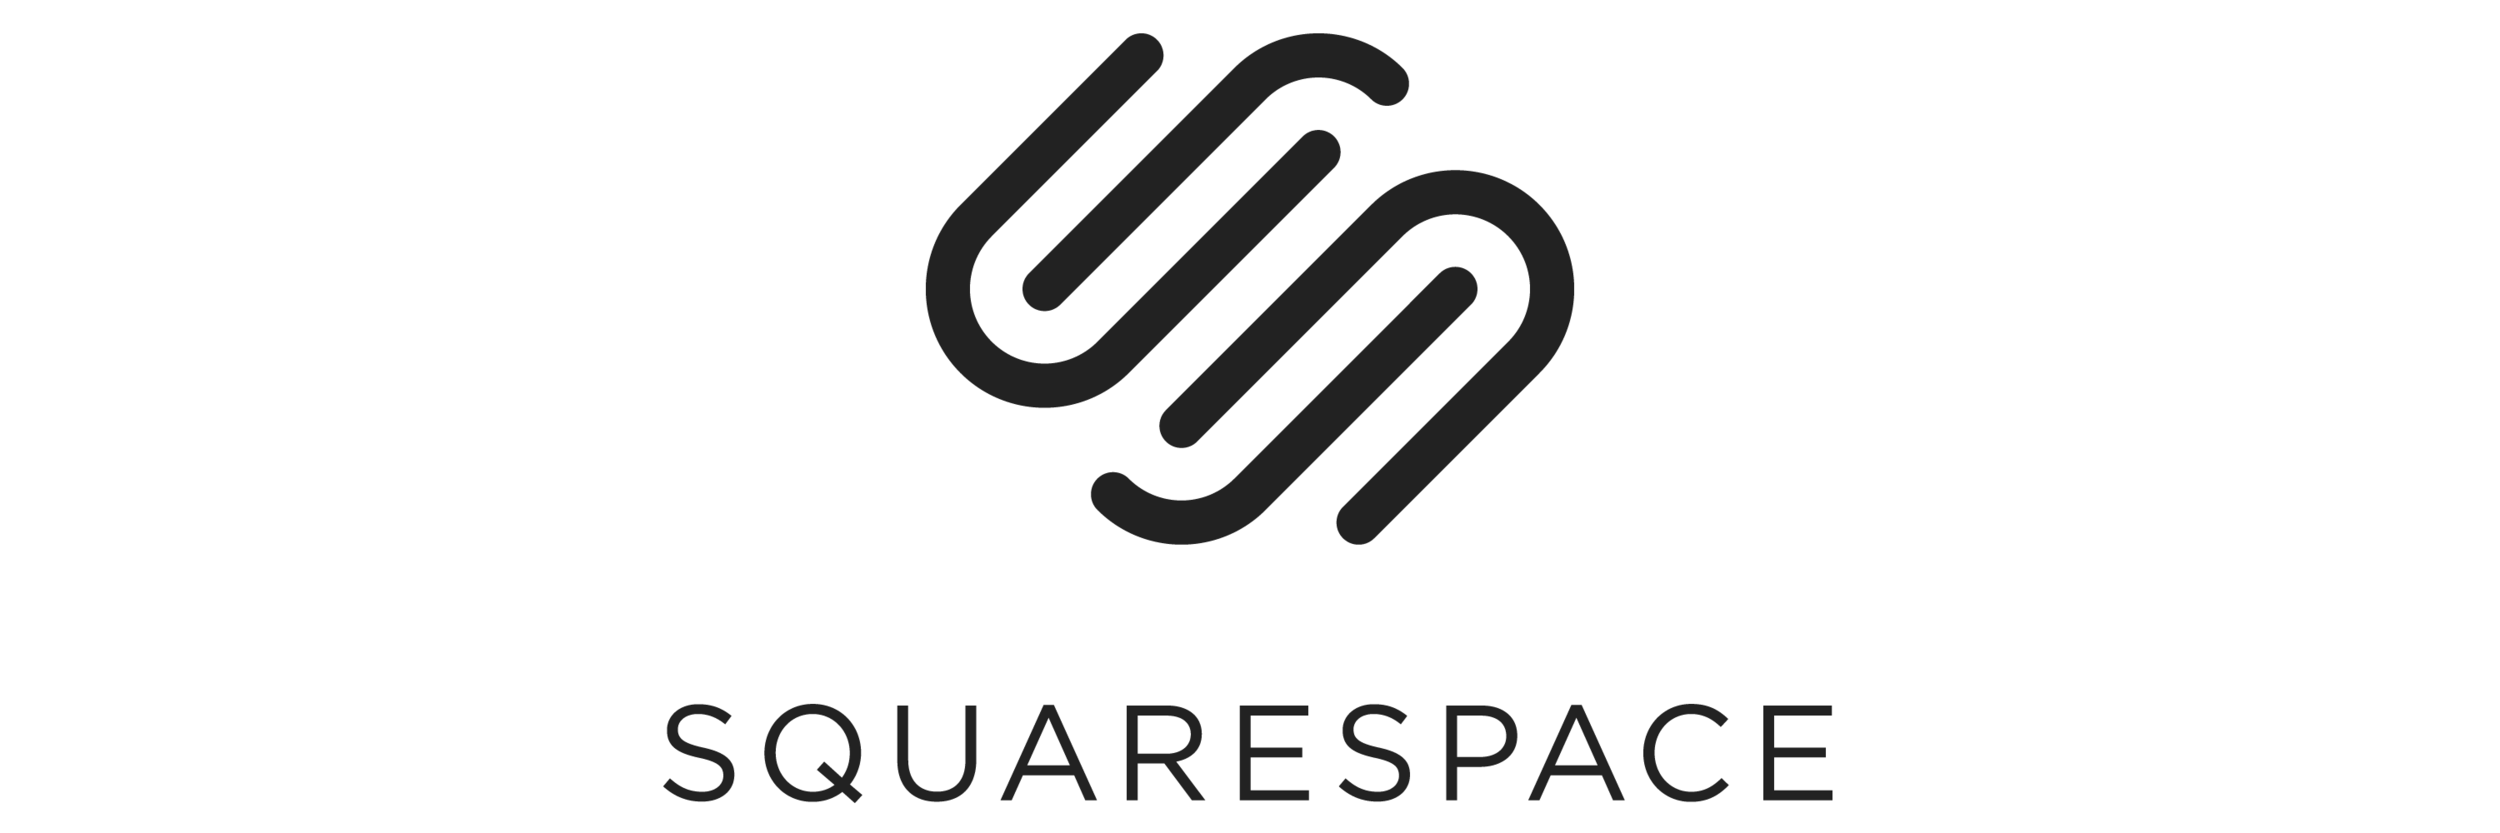 squarespace-logo-stacked-black-cropped.png